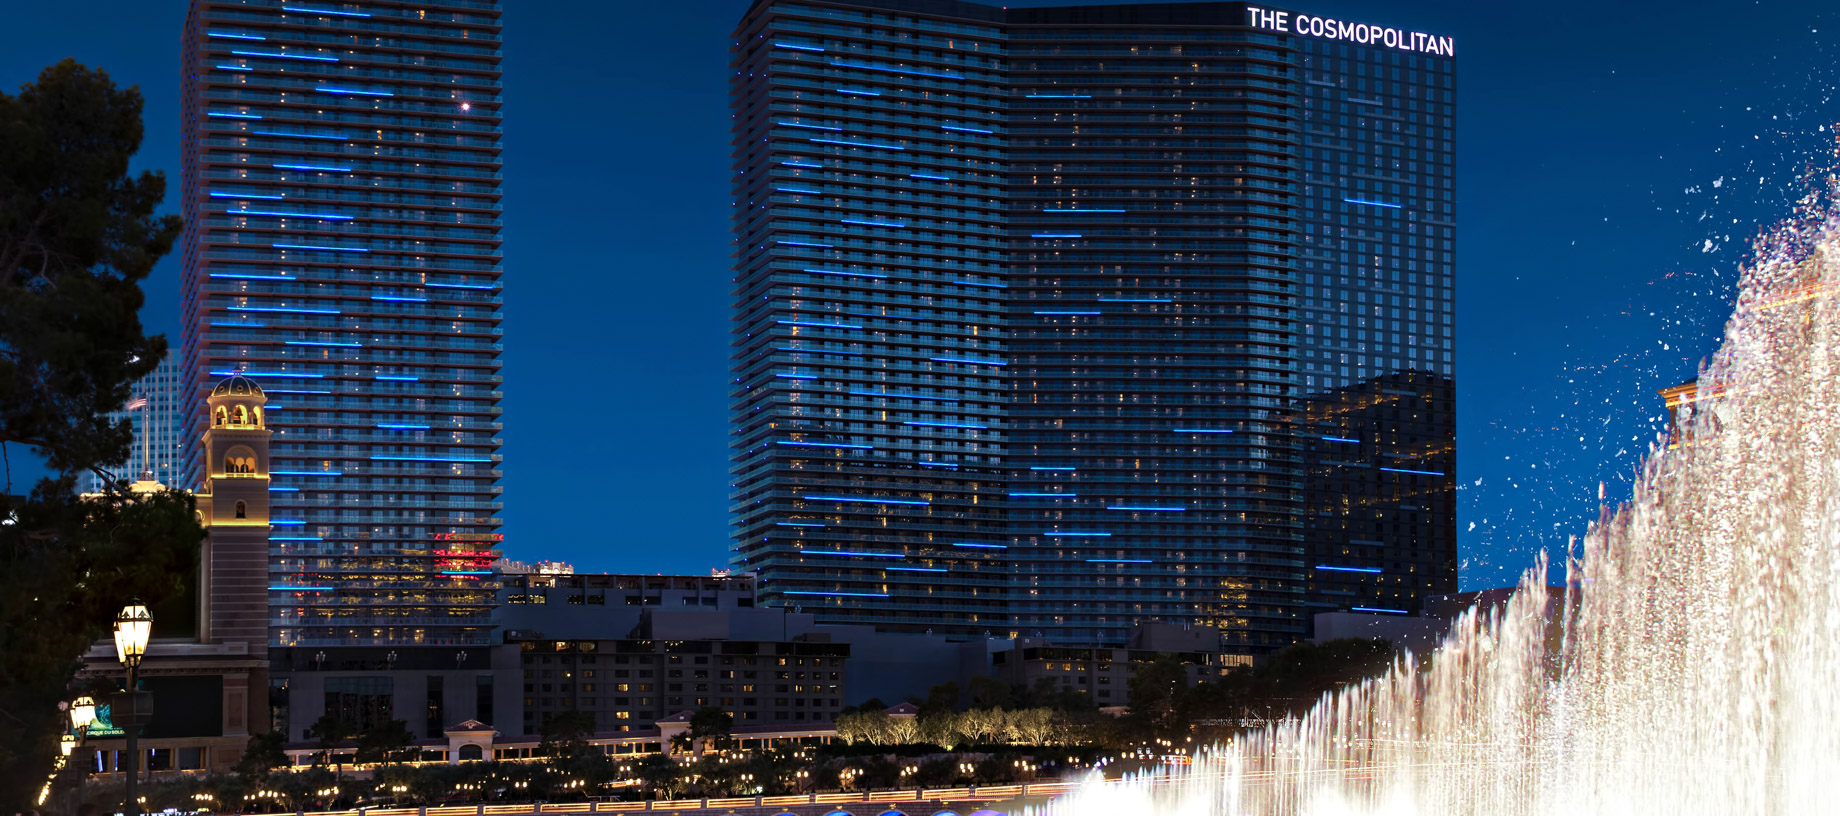 The Cosmopolitan Las Vegas - Billion Dollar Buildings - The Most Expensive Casino Properties in the World